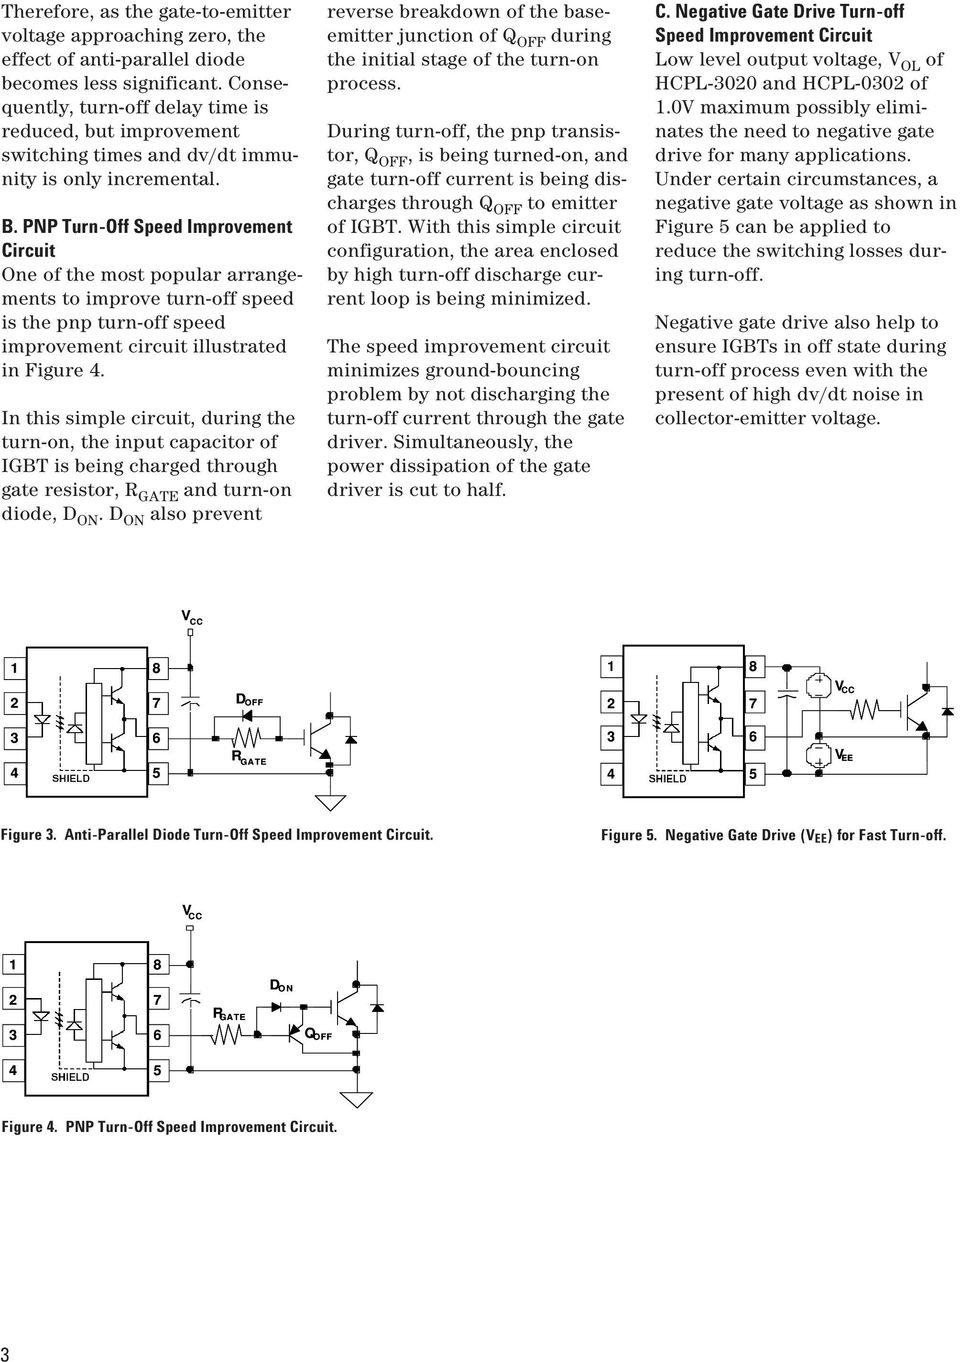 PNP Turn-Off Speed Improvement Circuit One of the most popular arrangements to improve turn-off speed is the pnp turn-off speed improvement circuit illustrated in Figure.